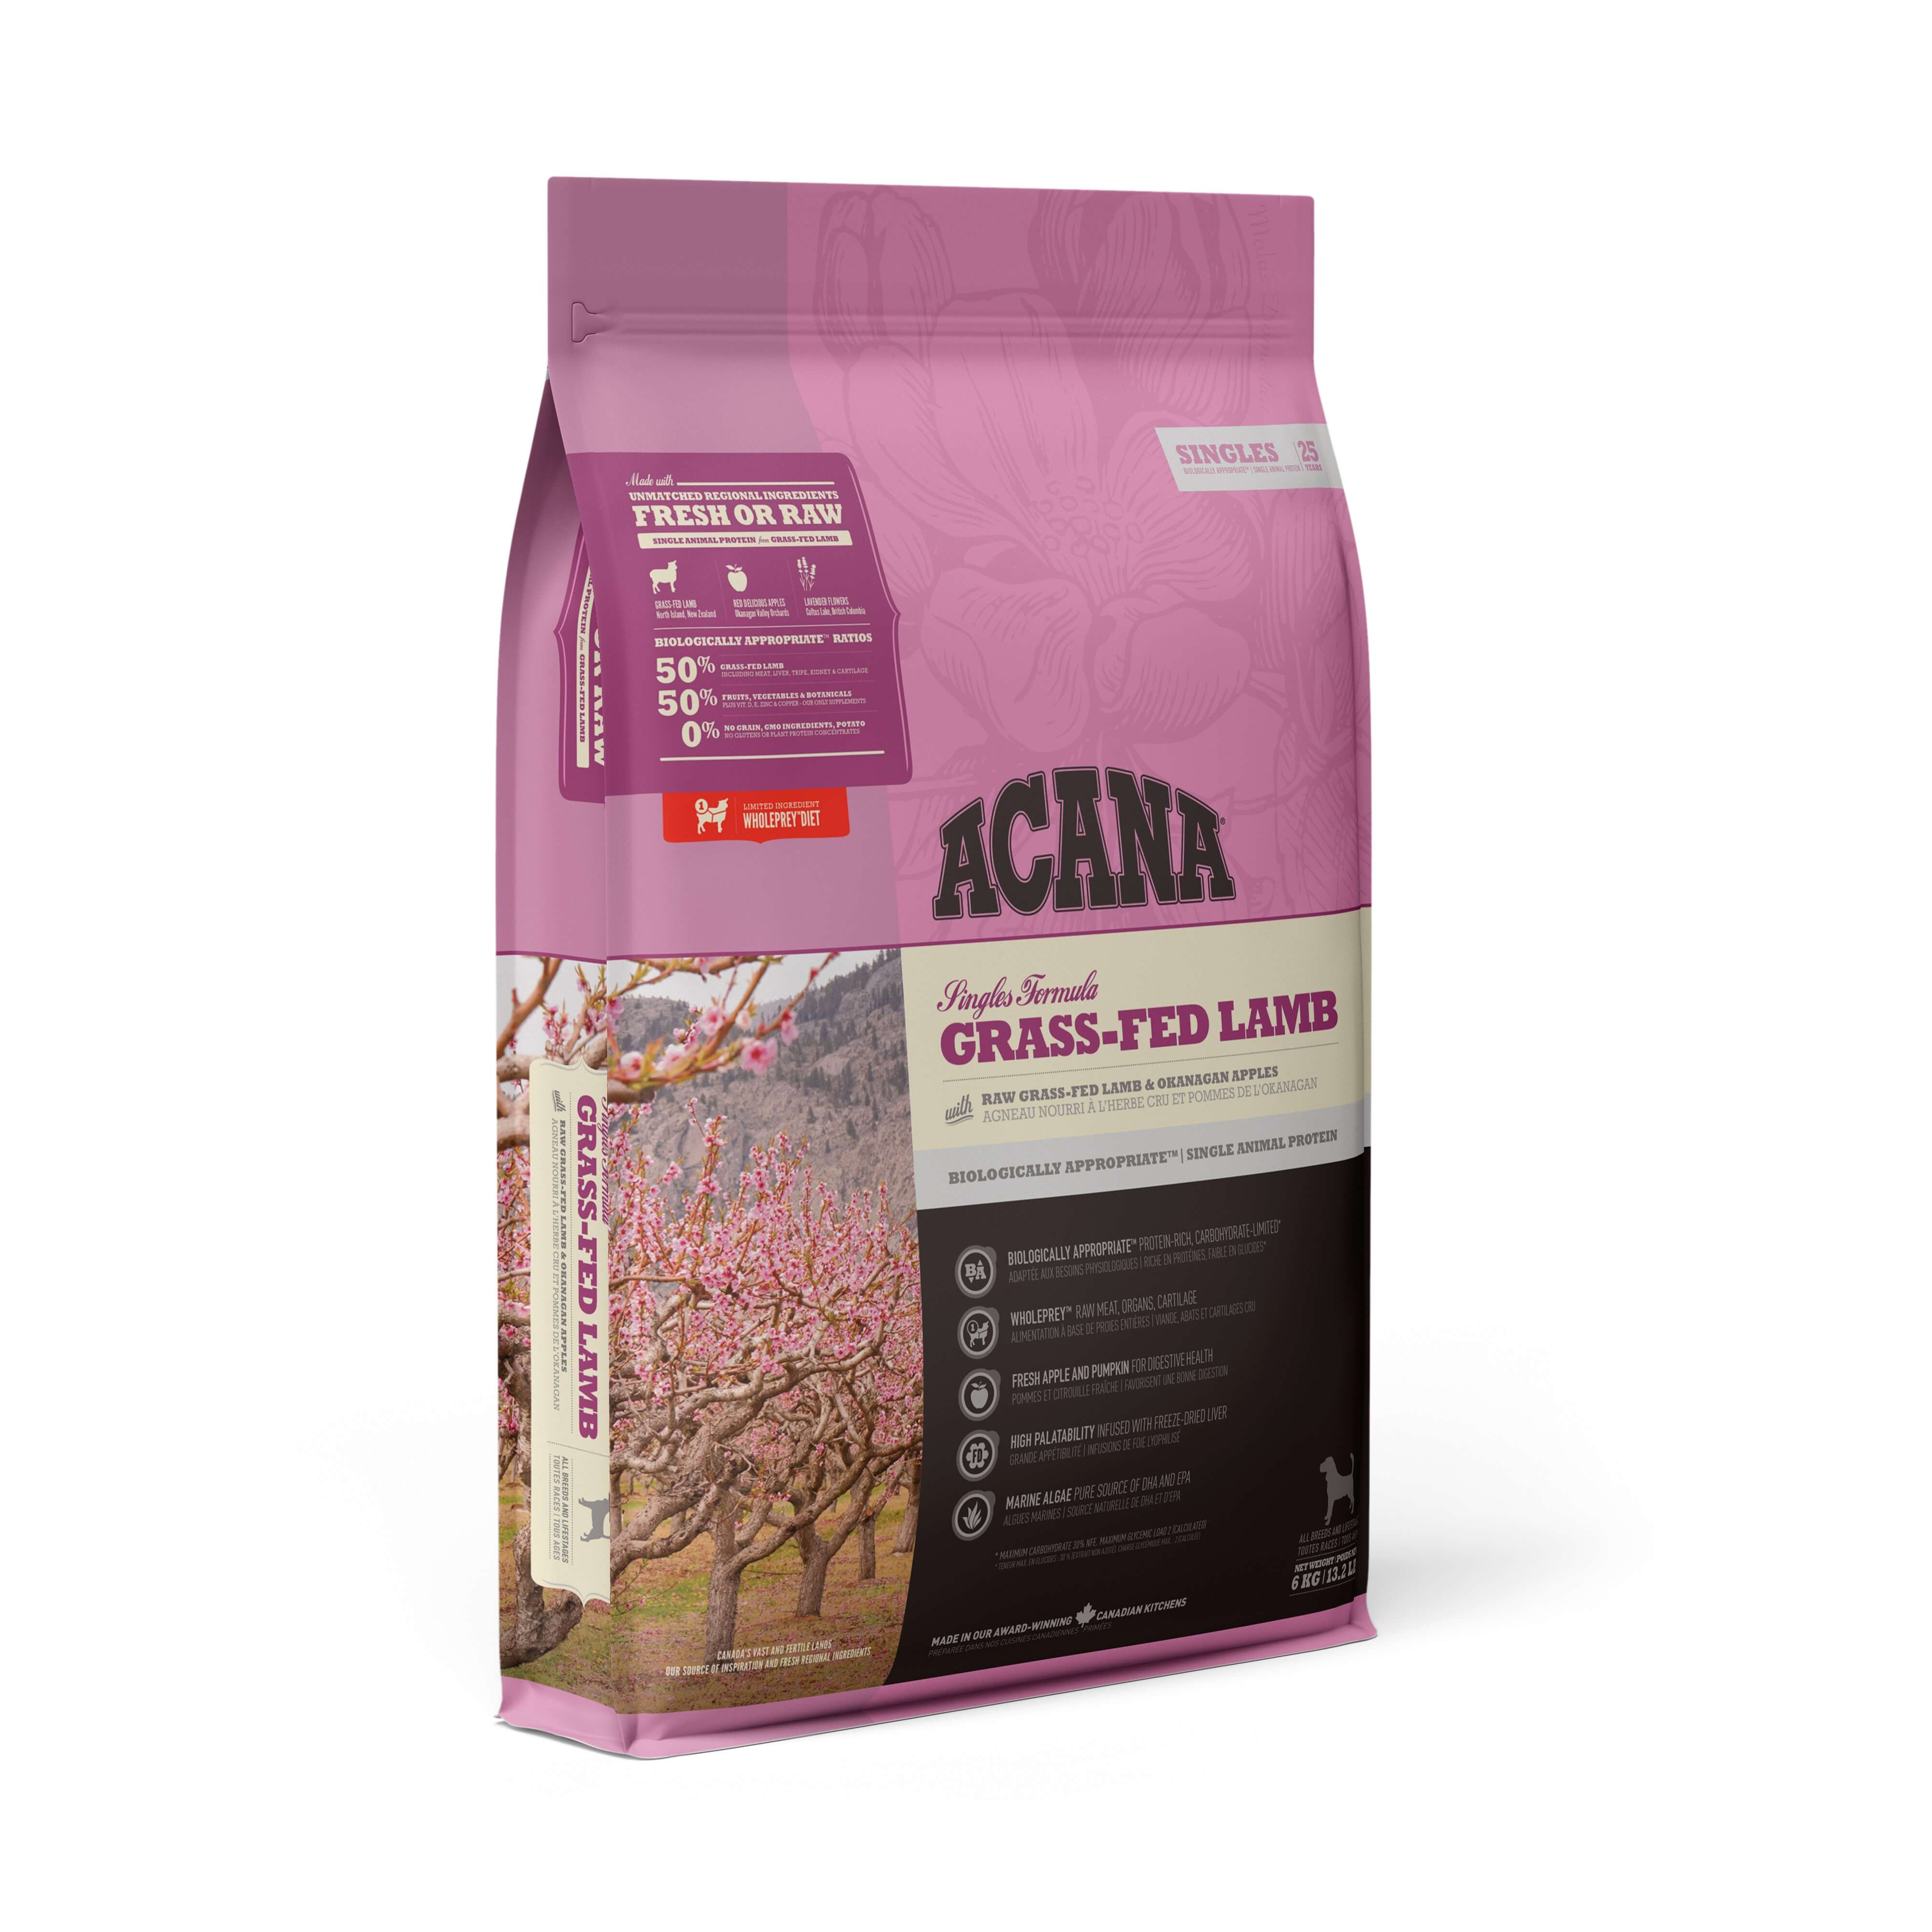 Acana Grass-Fed Lamb | 340gm - Click to enlarge picture.